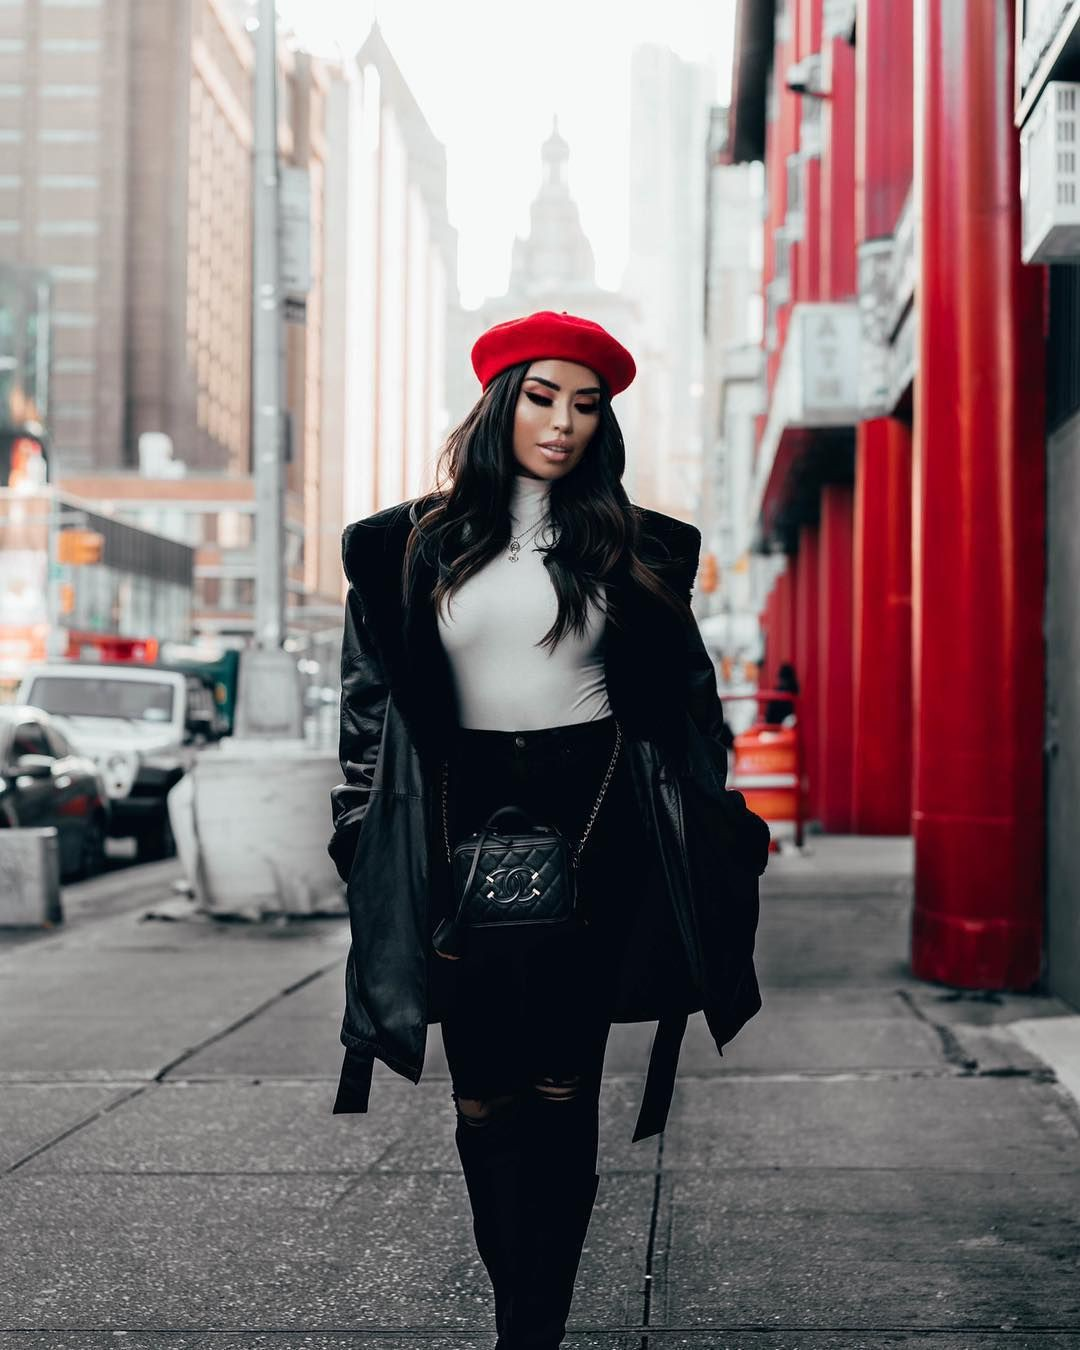 Black and red clothing ideas with trench coat, beanie, coat